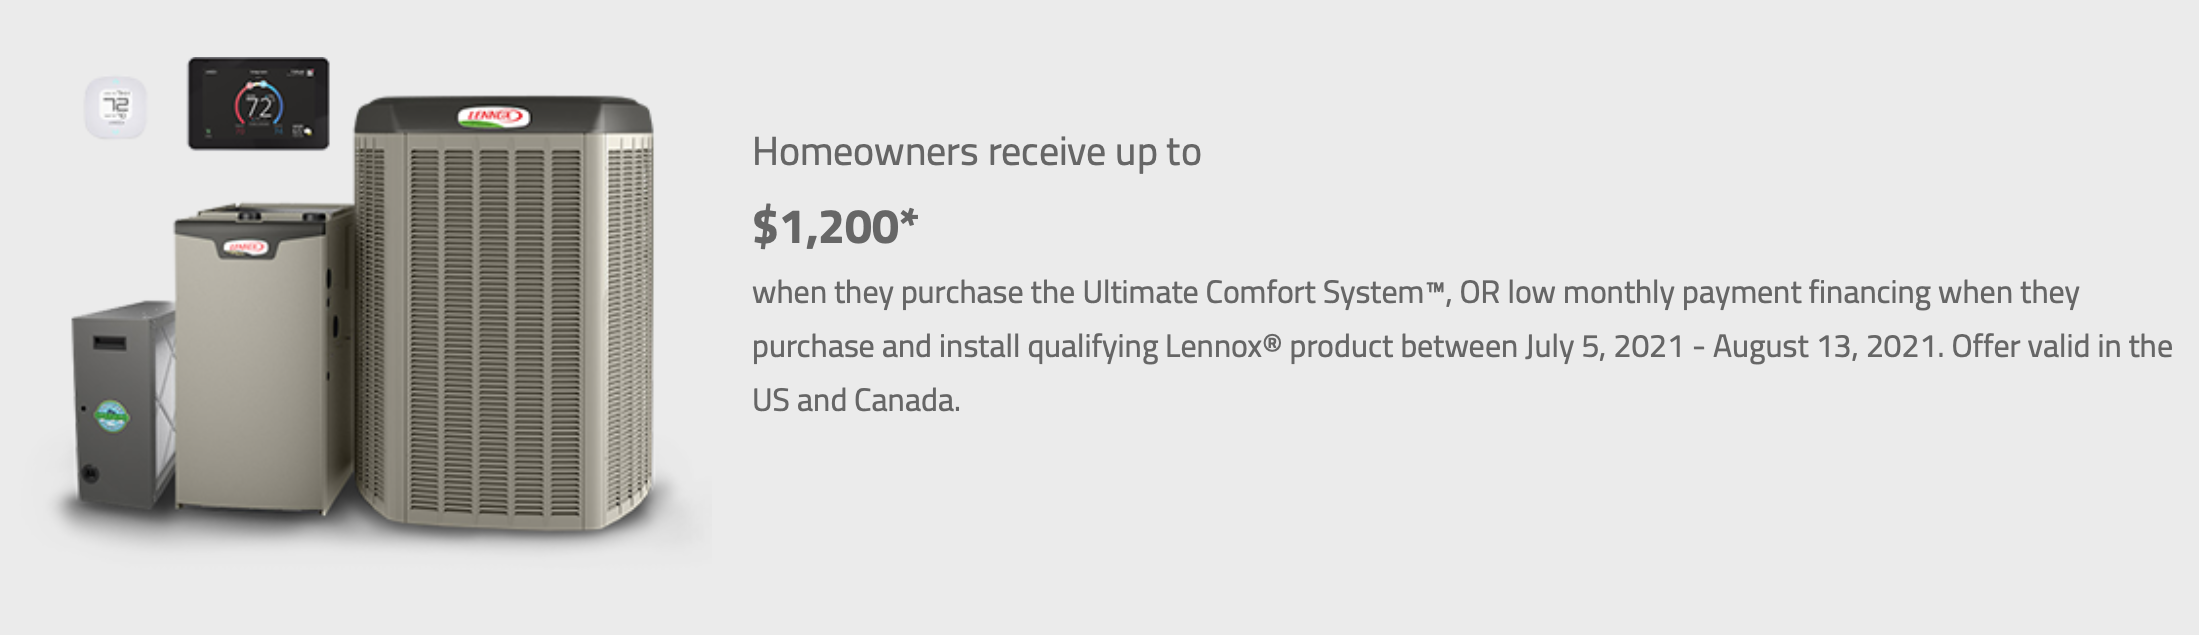 Homeowners receive up to $1,600. Plus a $200 bonus rebate when they purchase the Ultimate Comfort System, or low monthly payment financing when they purchase and install qualifying Lennox product between March 8 and June 11, 2021. Offer valid in the UW and Canada.